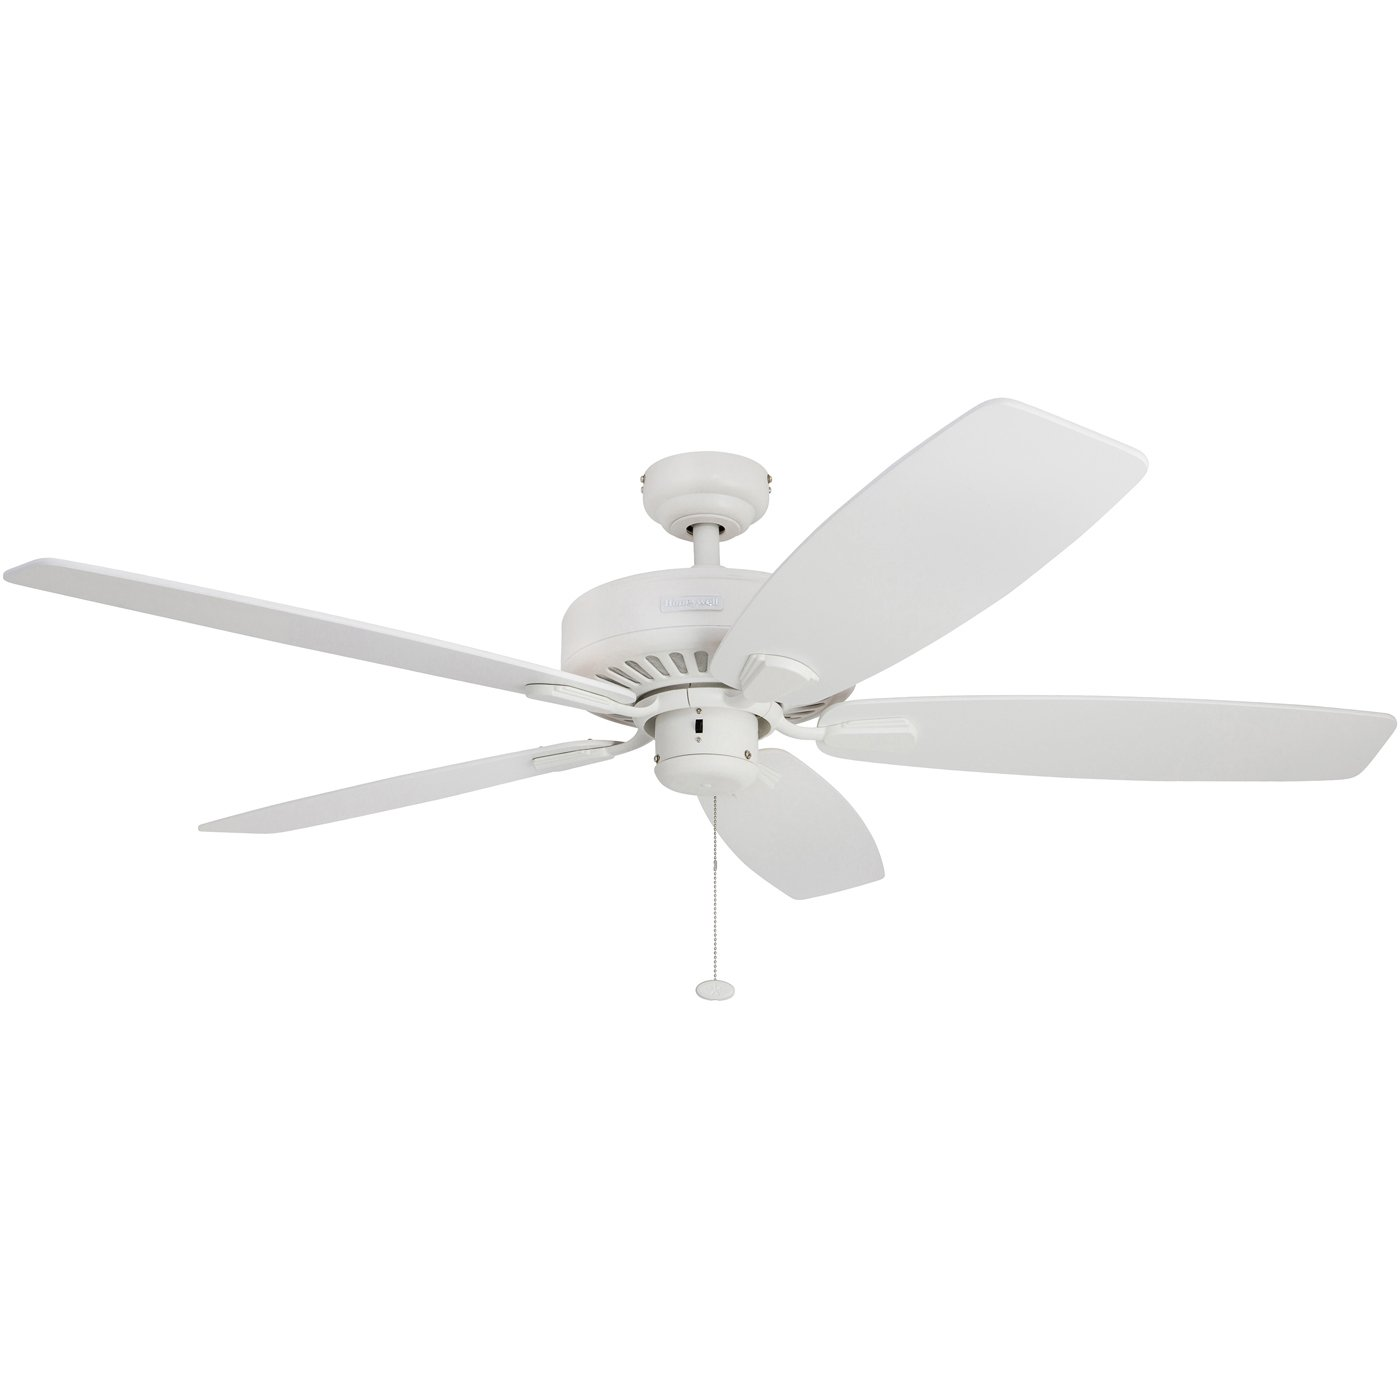 Honeywell Sutton 52-Inch Ceiling Fan, Energy Star Certified, Five Reversible White/Maple Blades, White